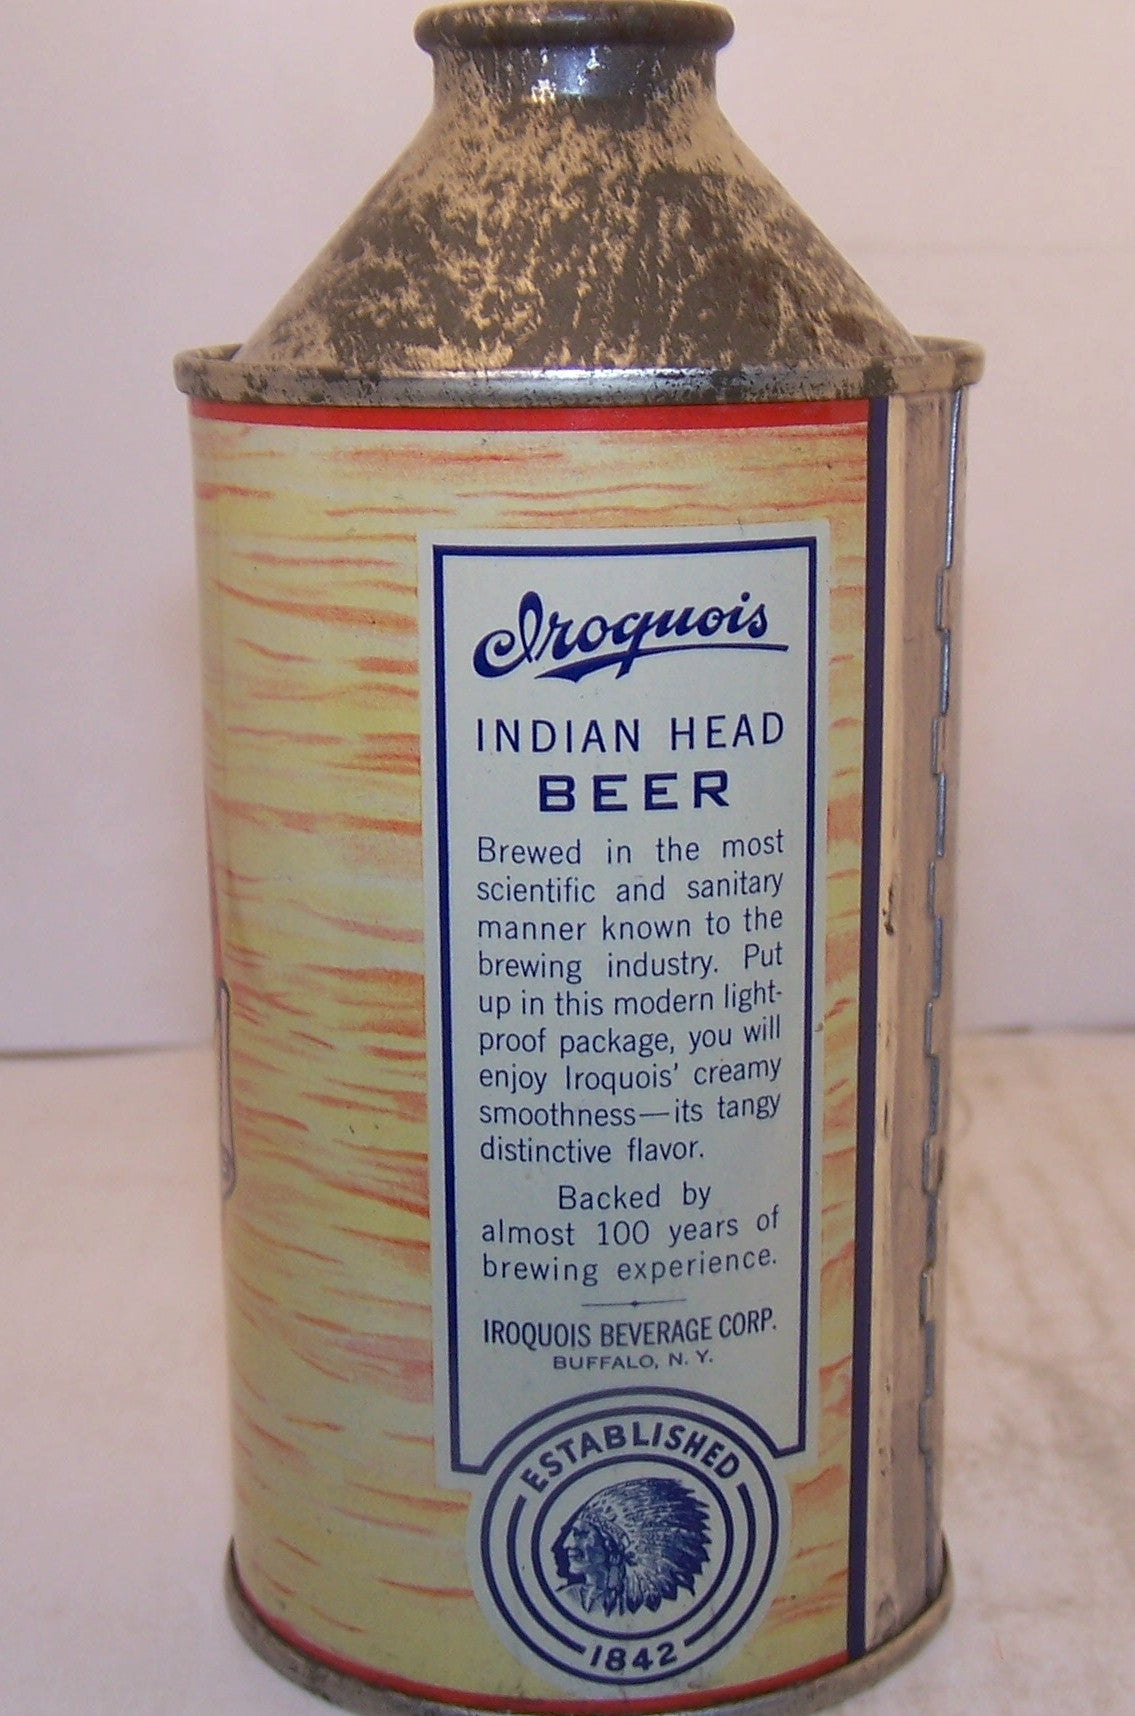 Iroquois Indian Head Beer, USBC 170-10 Grade 1/1+ Sold 2/28/15